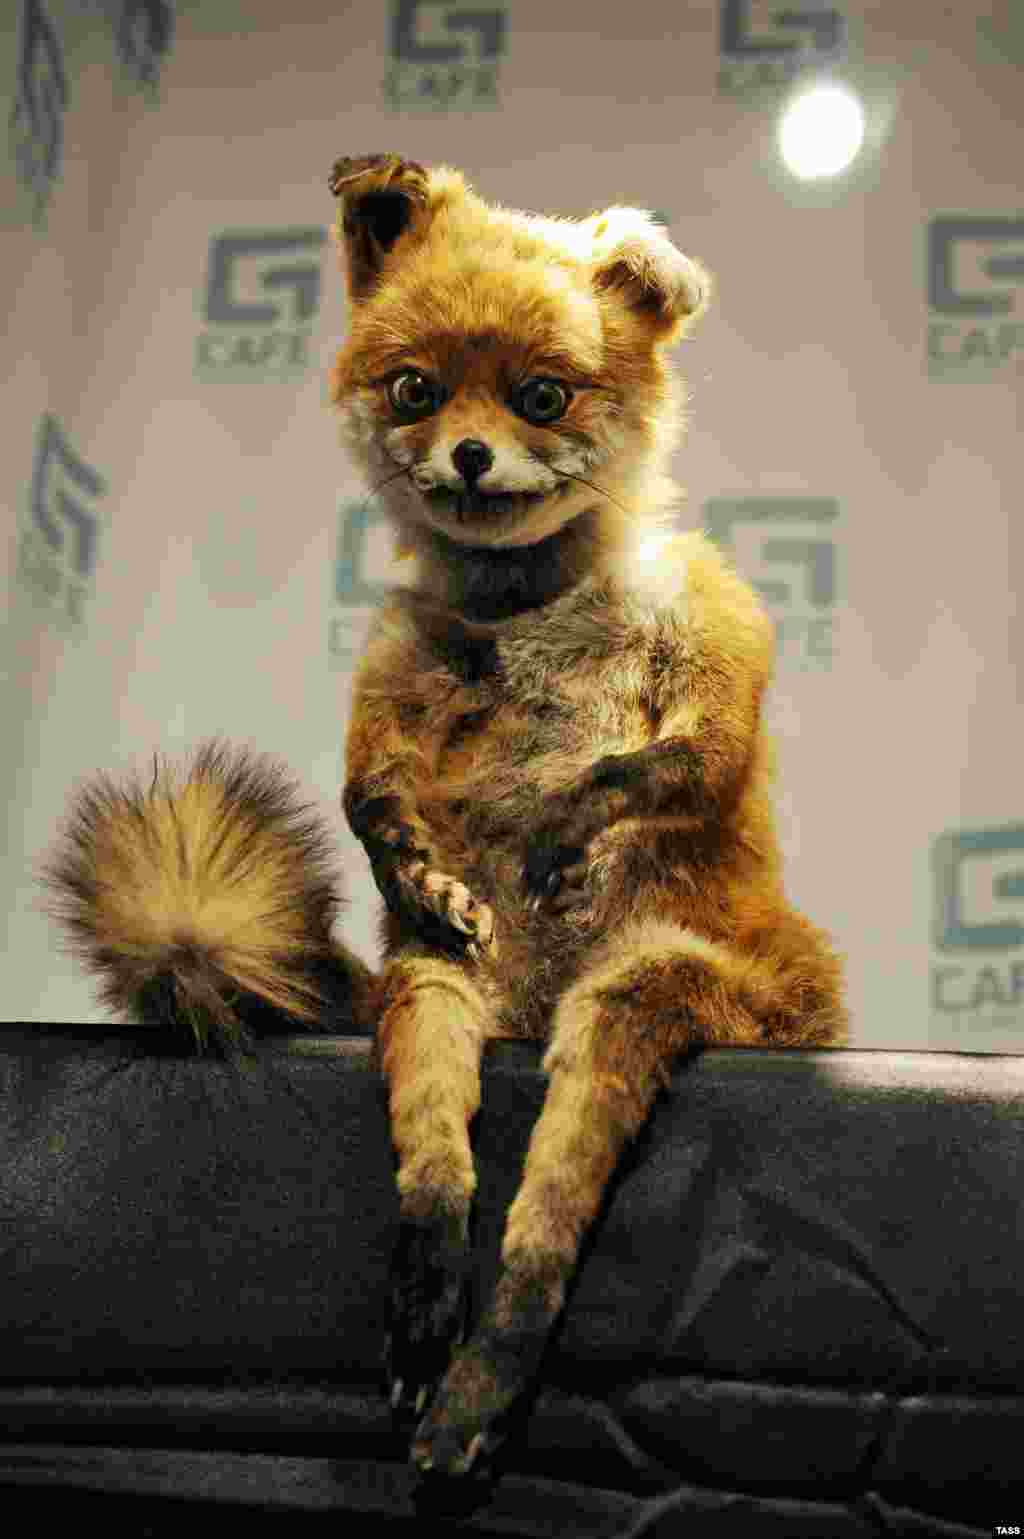 A stuffed fox created by Adele Morse, a British artist and taxidermist, appears at an exhibition in St. Petersburg. The fox, which sports a dazed look and sits in a humanlike pose, has become a celebrity in Russia. Numerous images of the fox Photoshopped in various scenes have appeared on social networking sites. (ITAR-TASS/Ruslan Shamukov)